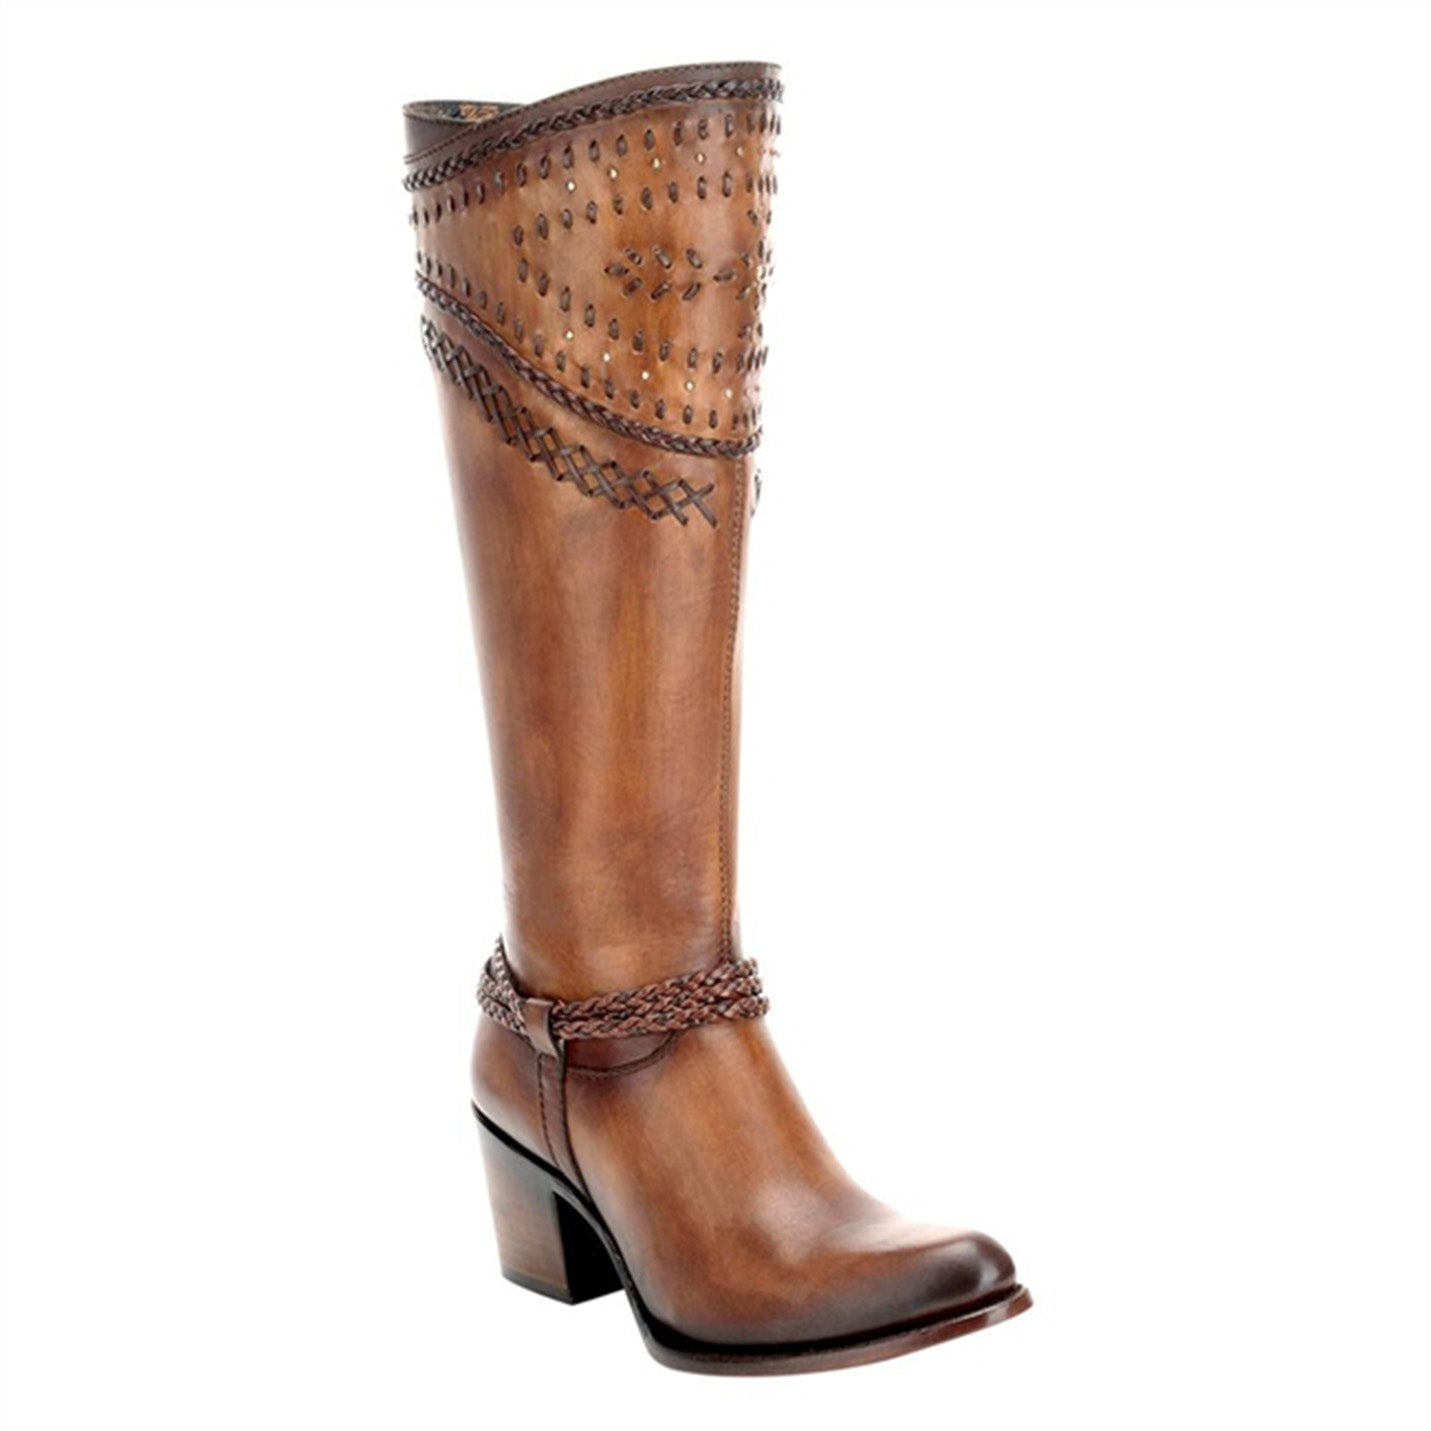 Cuadra Crust Arcilla Tall Boot - 2Q2ACS